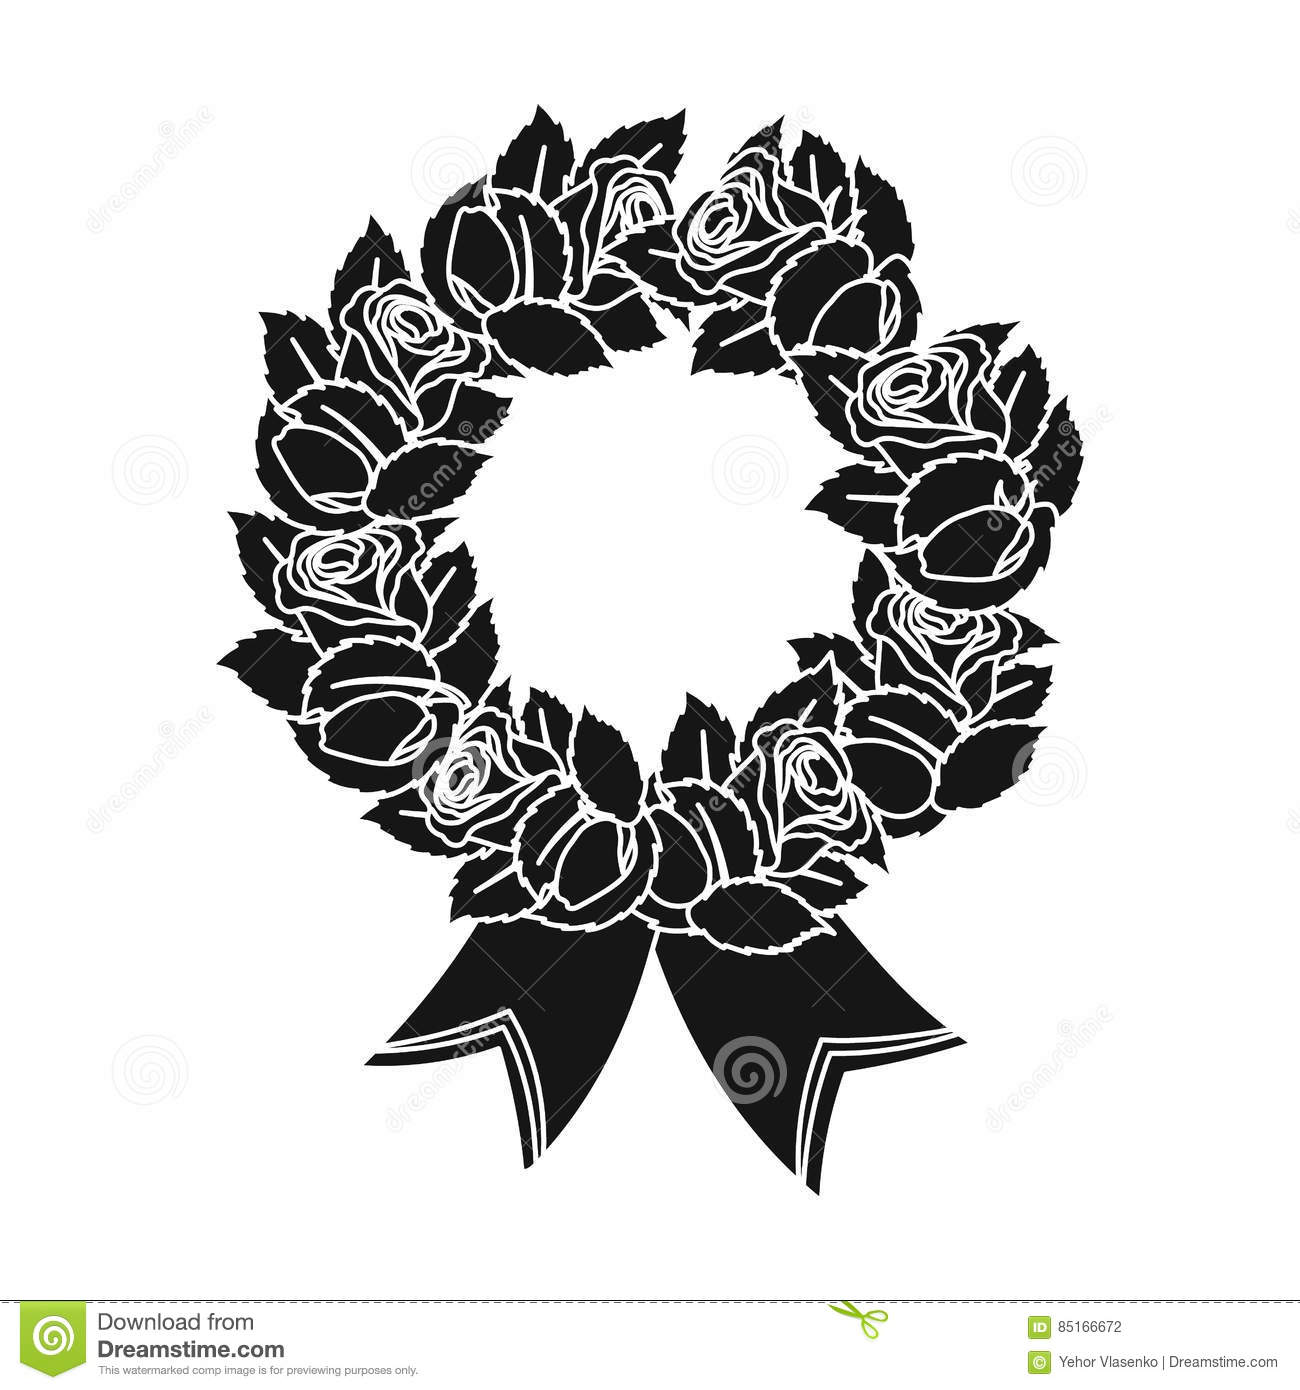 Funeral Wreath Black And White Stock Vector Illustration Of